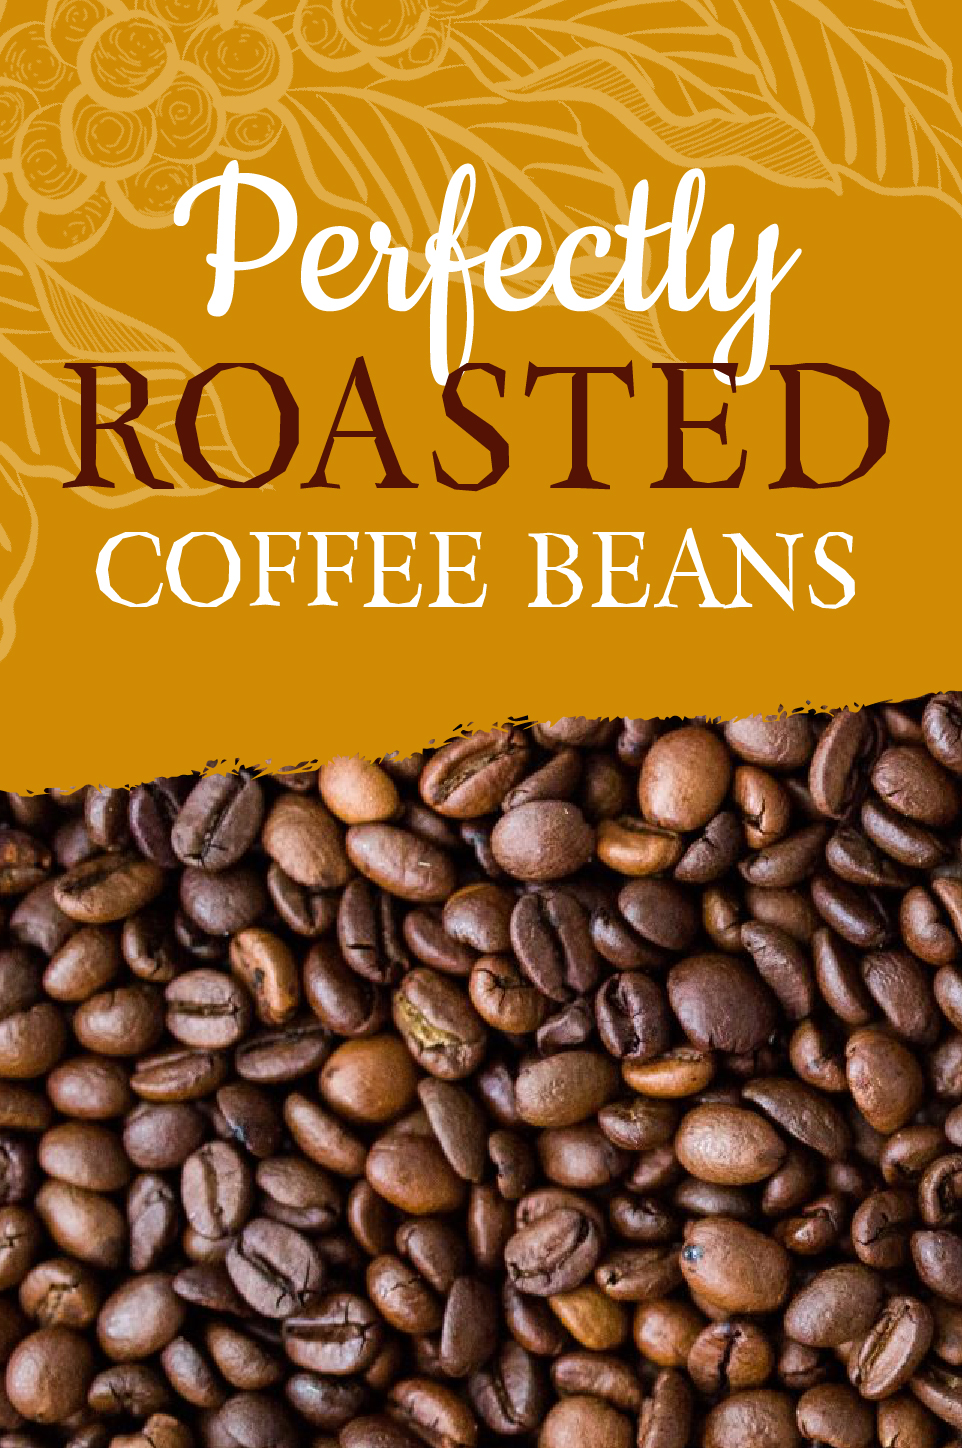 perfectly roasted coffee beans@2x-100